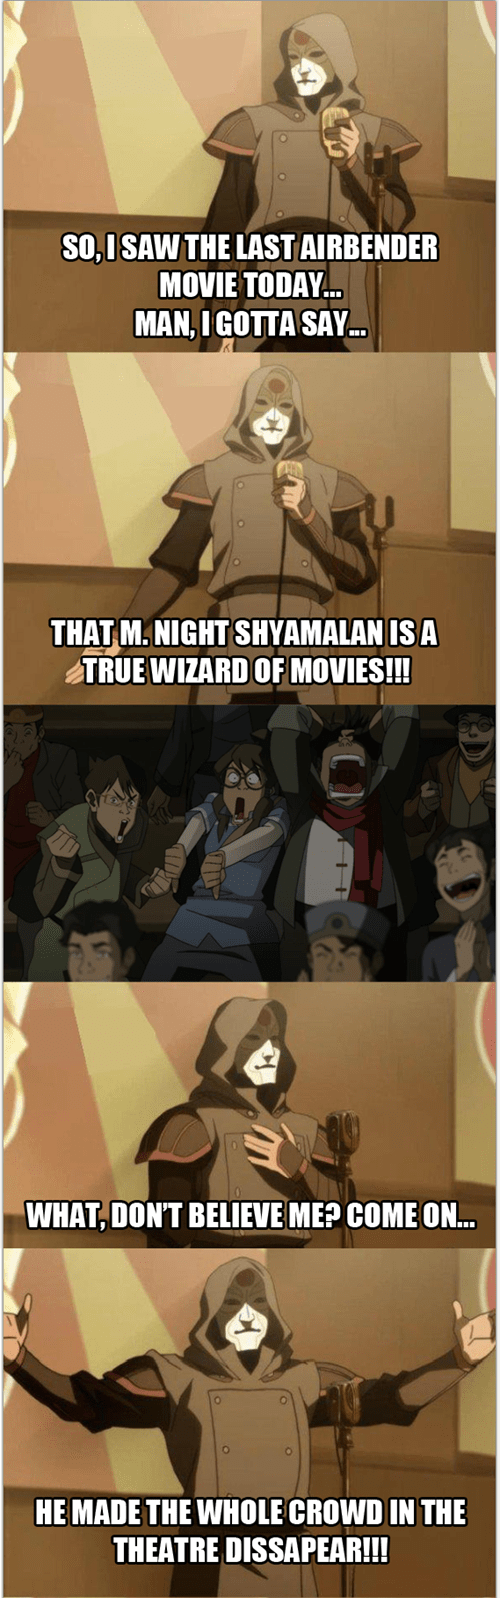 m night shyamalan Avatar the Last Airbender cartoons Avatar bad joke Amon korra - 8288078848